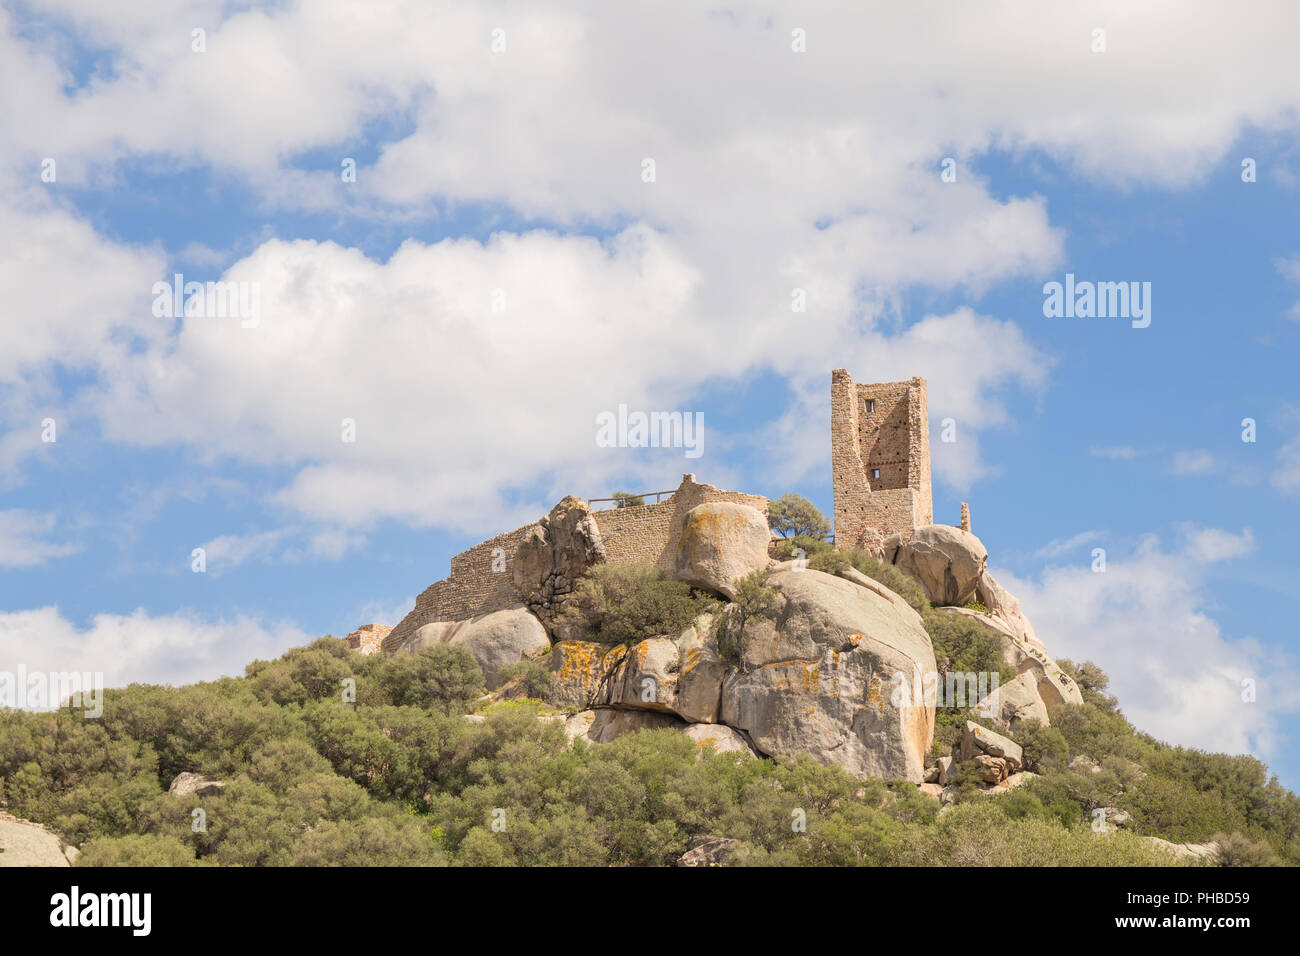 Castle of Pedres - Olbia Sardinia - Stock Image